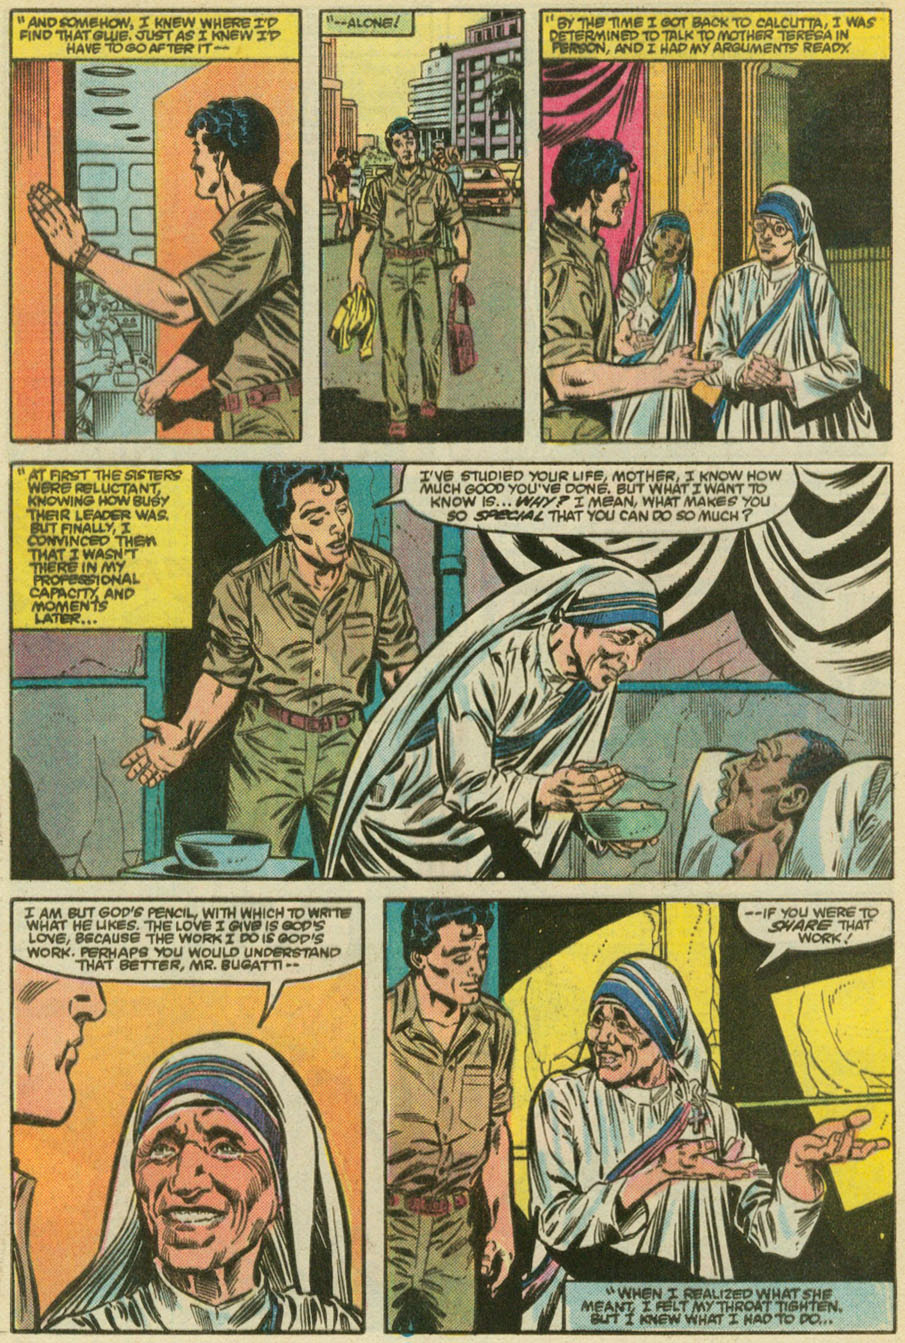 Mother Teresa Was a Marvel Comic Book Hero in the 80s